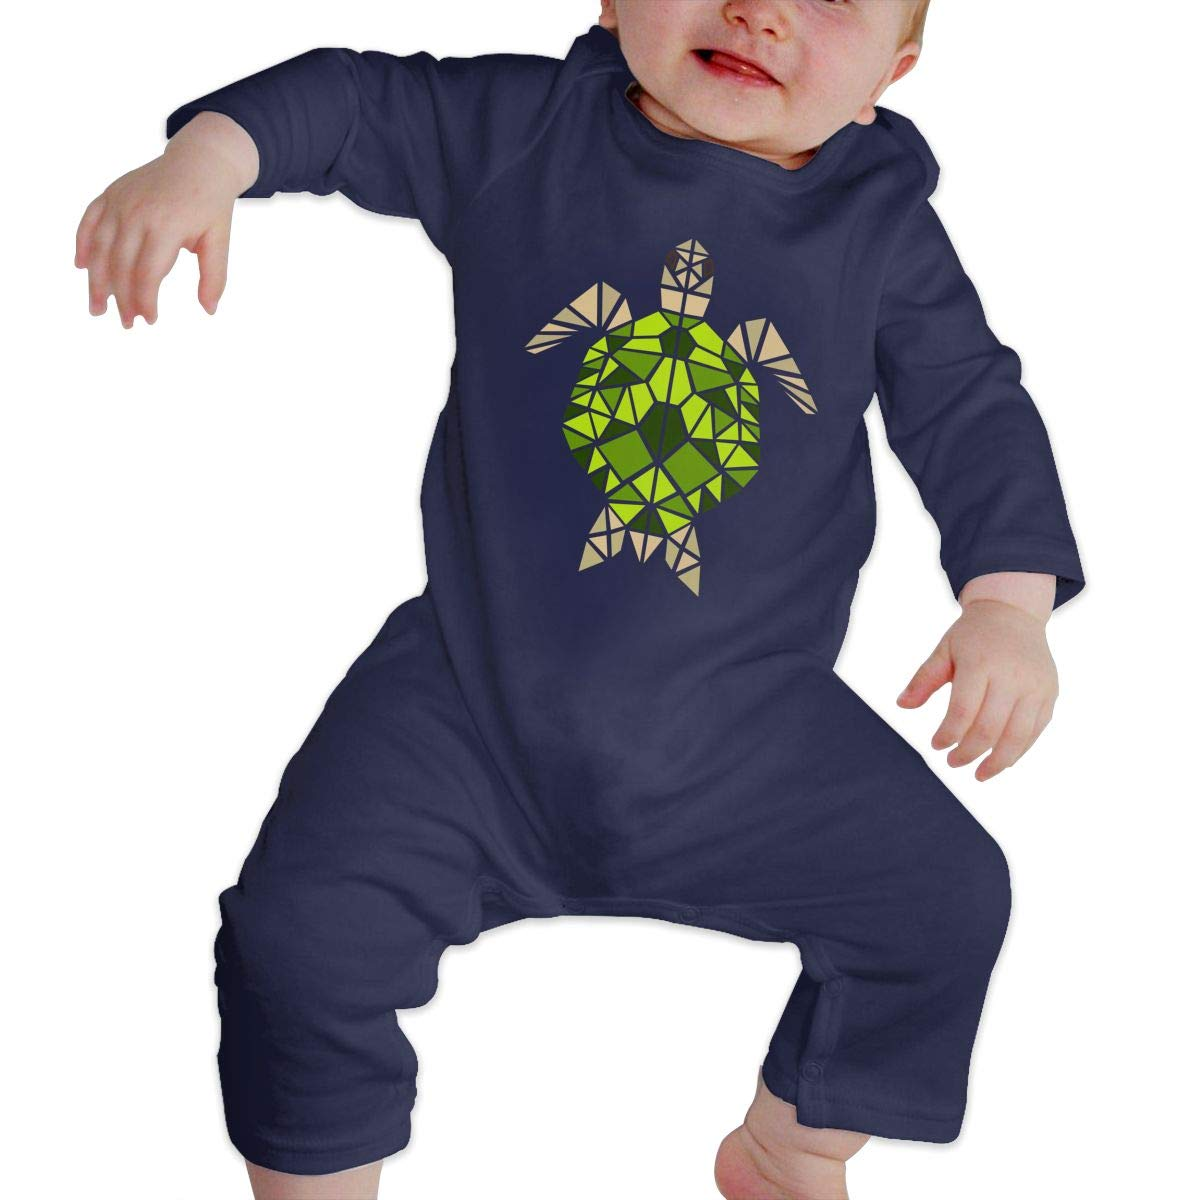 The Tortoise Unisex Long Sleeve Baby Gown Baby Bodysuit Unionsuit Footed Pajamas Romper Jumpsuit